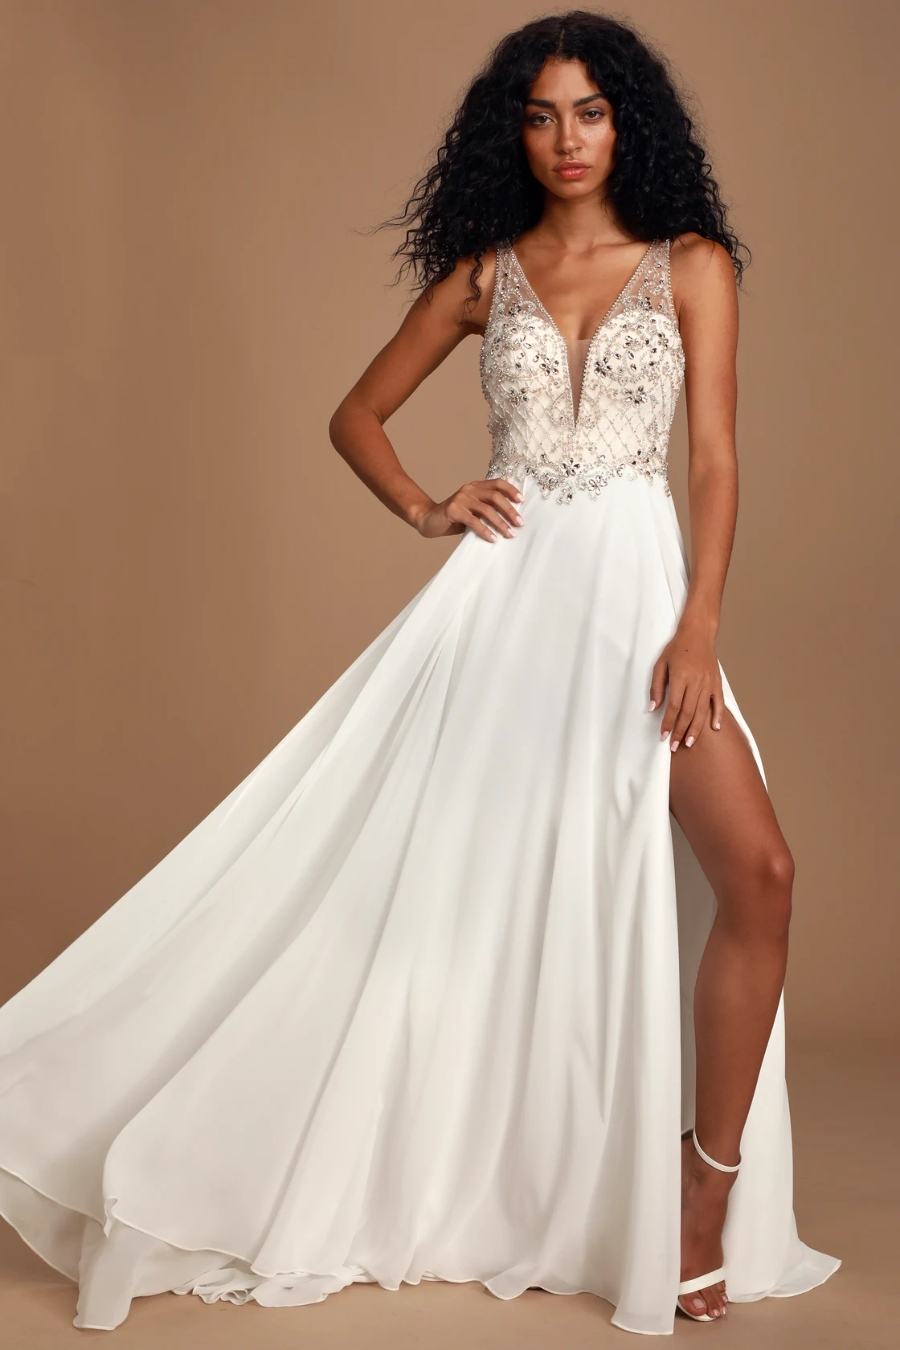 destination wedding dresses_5972-ivor-yawah